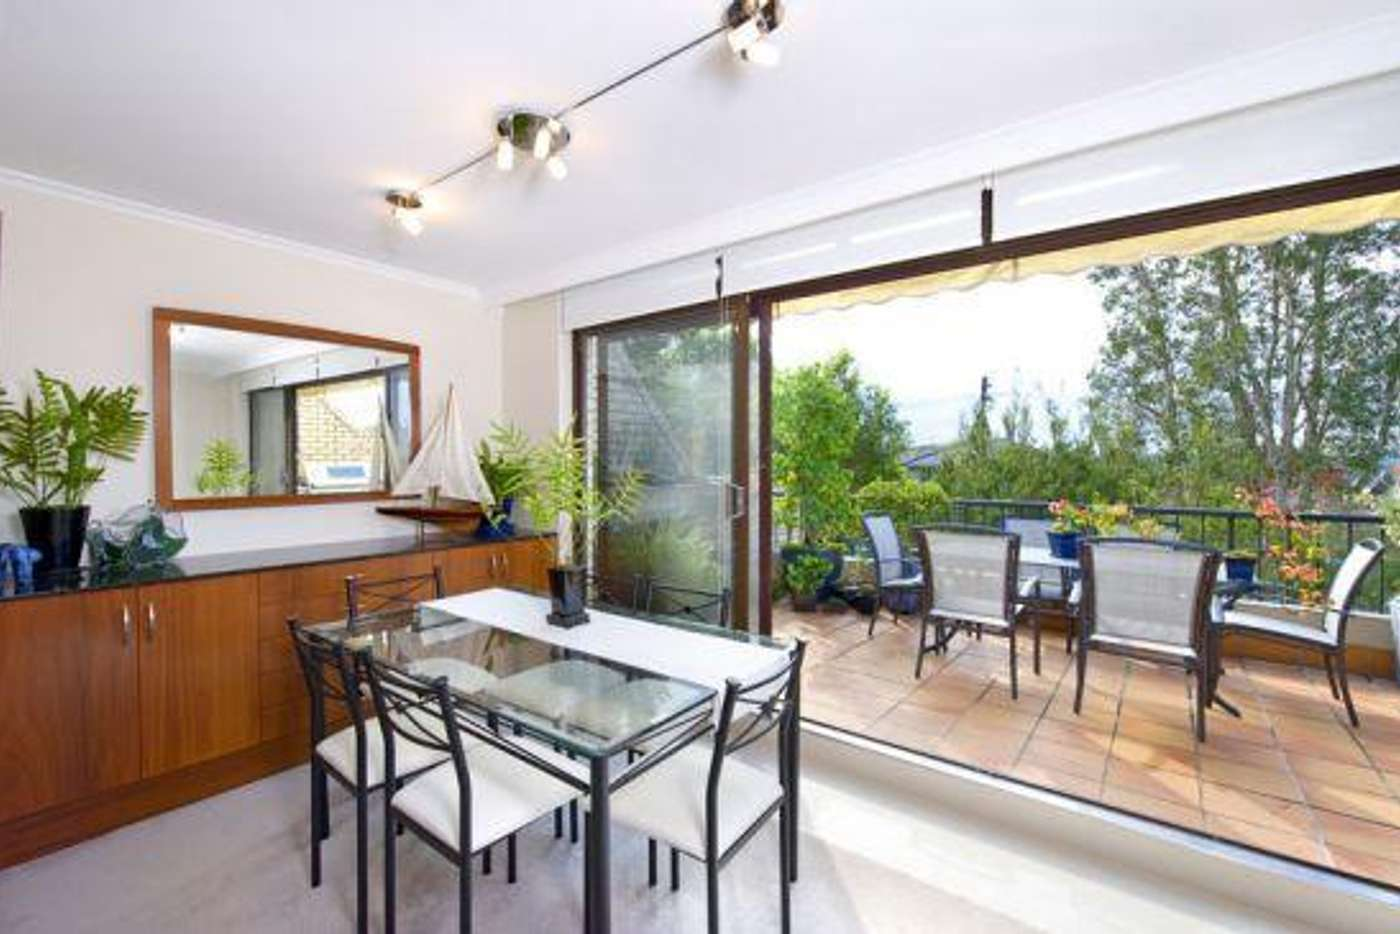 Main view of Homely apartment listing, 3/25-27 Grasmere Road, Cremorne NSW 2090